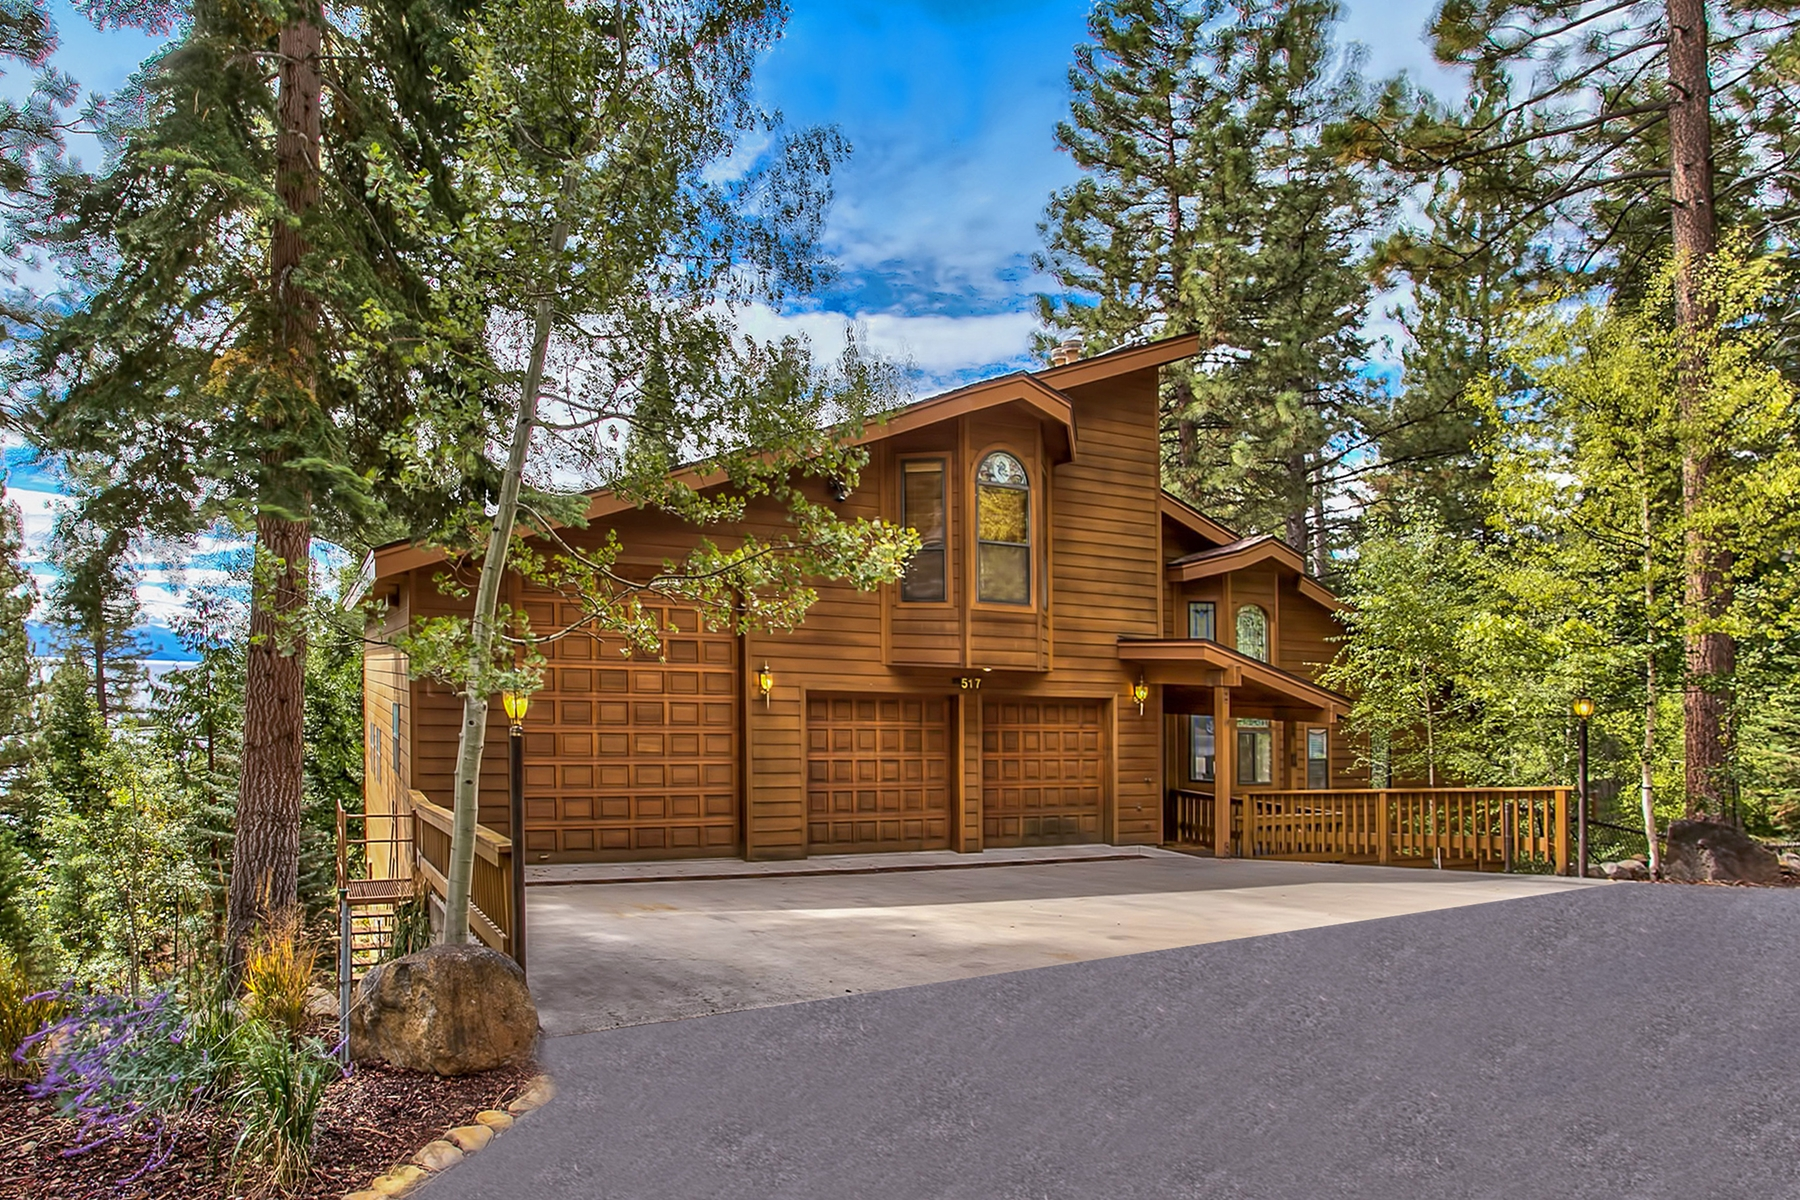 Maison unifamiliale pour l Vente à 517 Lodgepole Drive Incline Village, Nevada, 89451 Lake Tahoe, États-Unis